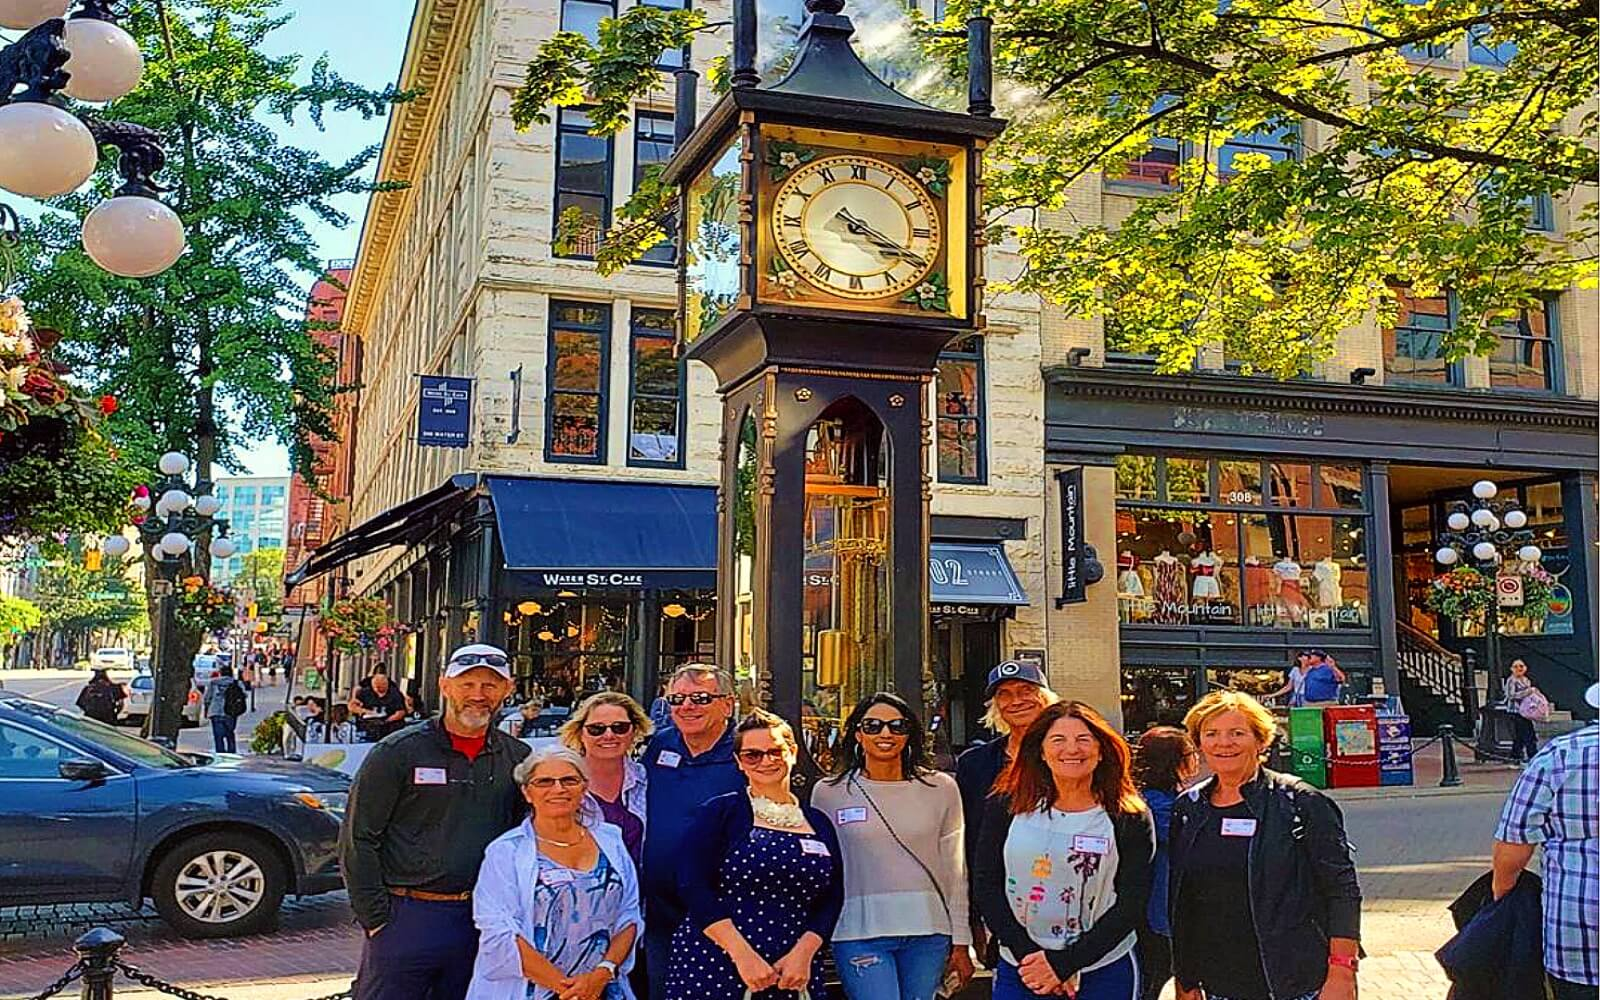 Guests on the Gastown Food Tour stand in front of the Gastown Steamclock